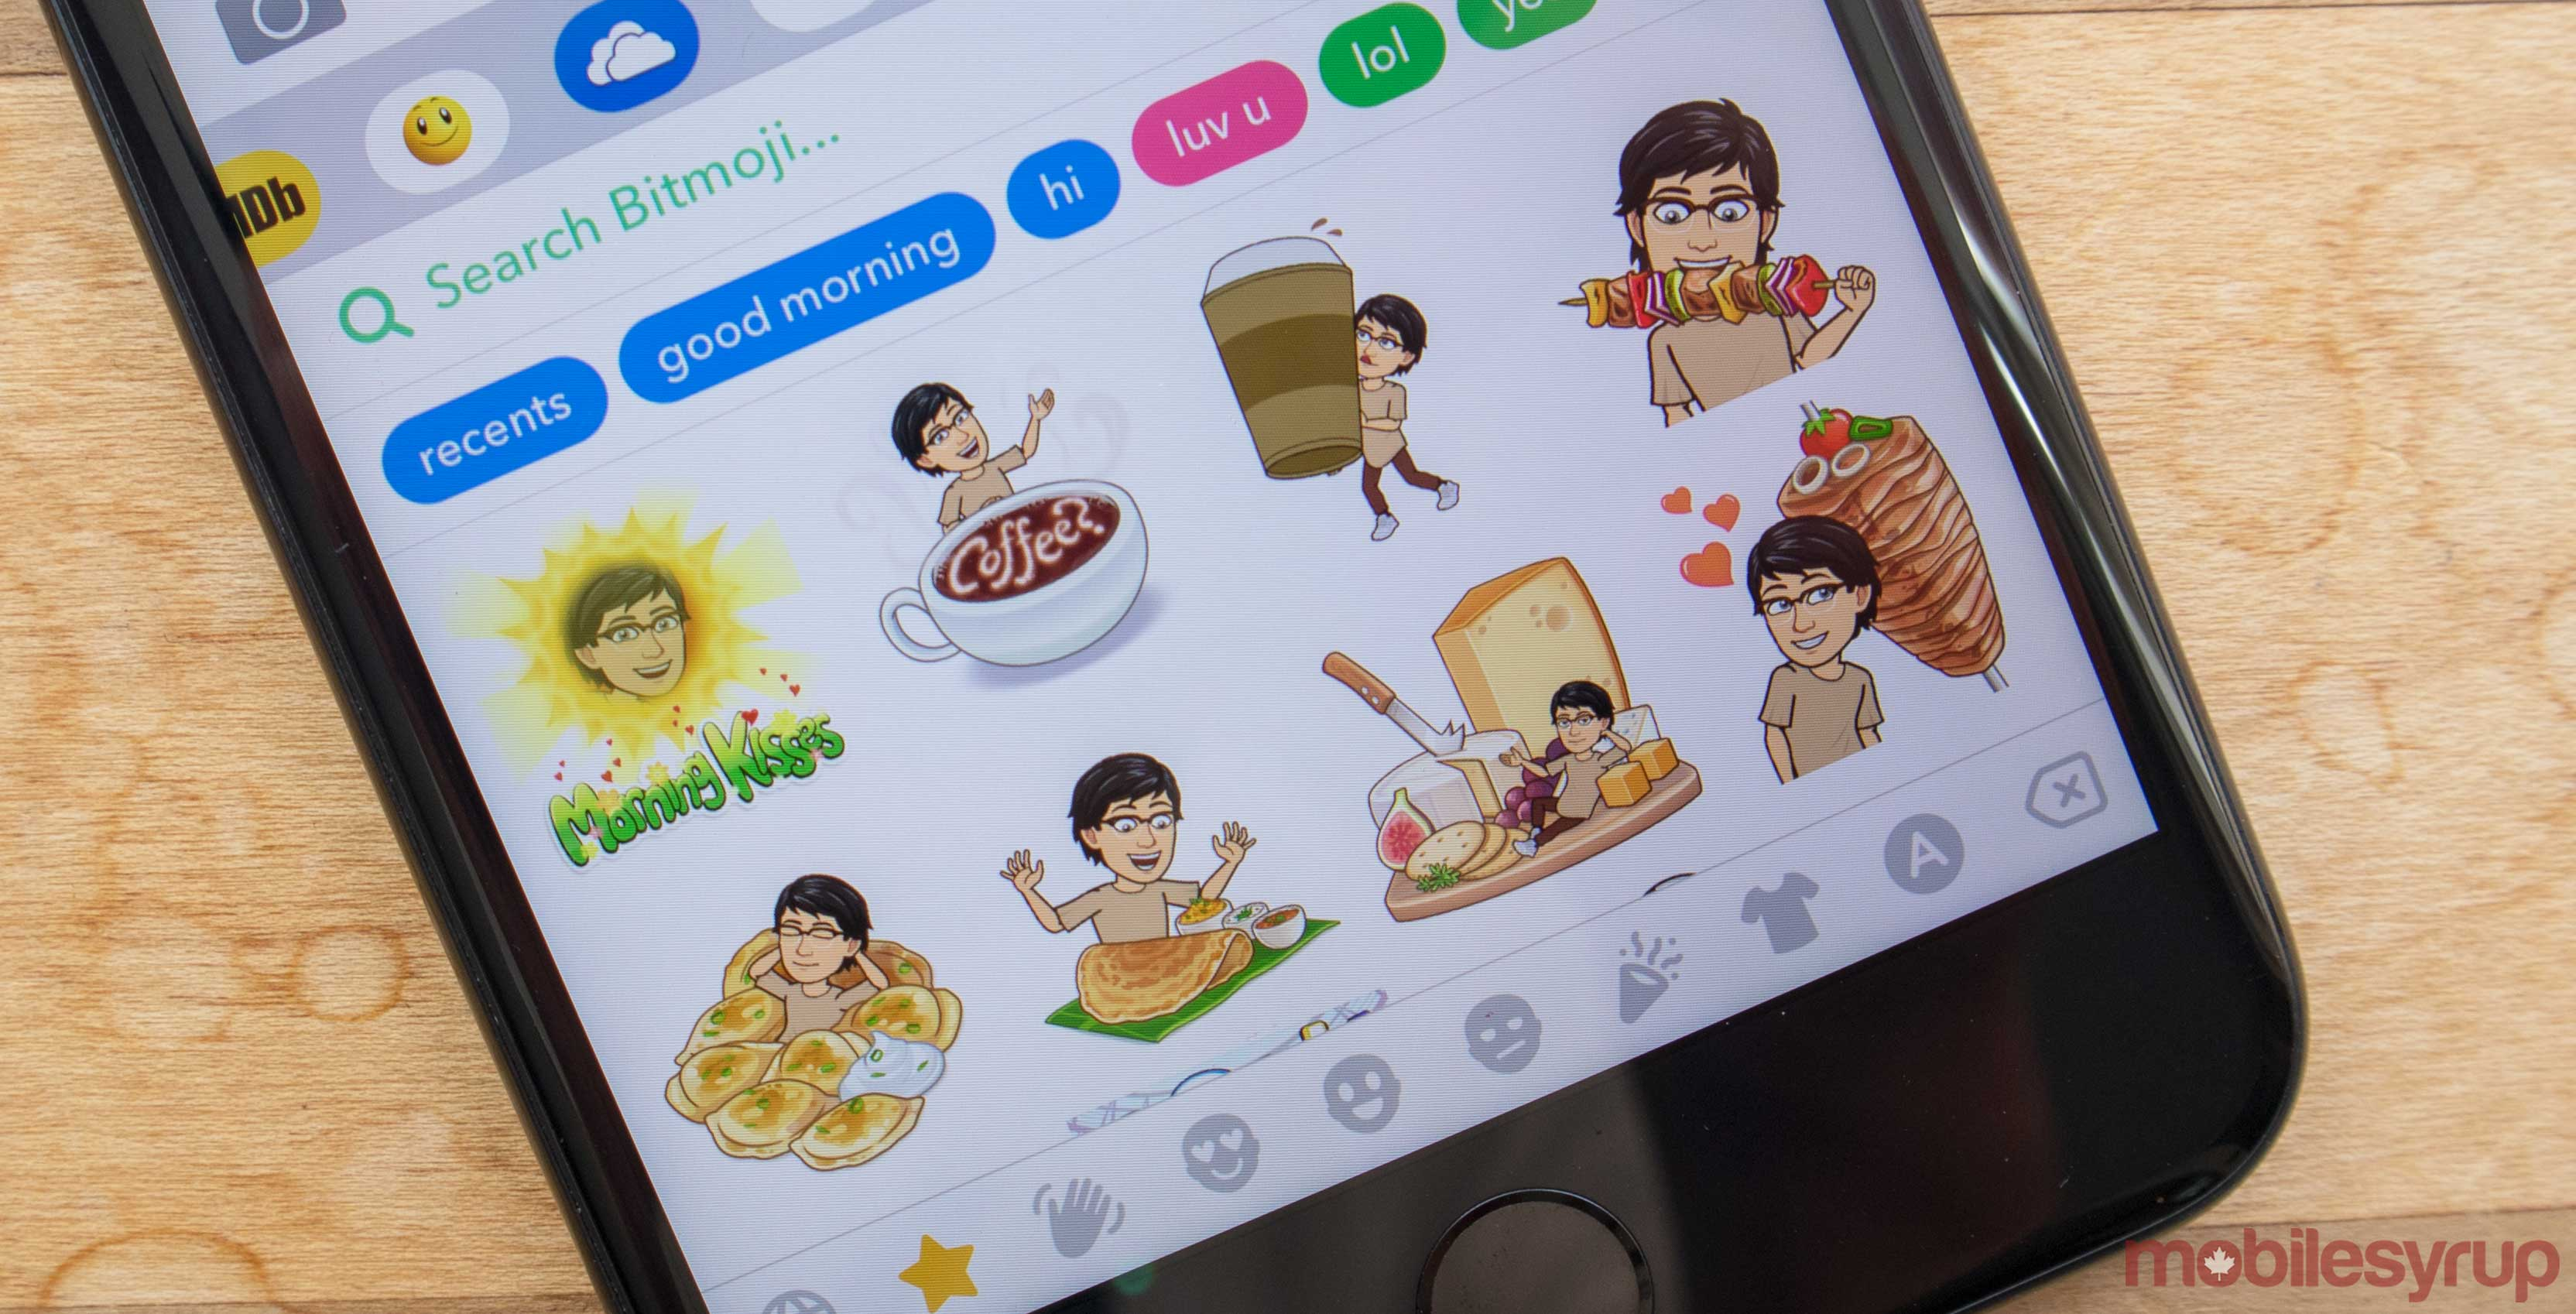 0ff80366d14 Snapchat's personalized Friendmojis are soon going to become stickers in  the iOS Messenges app.